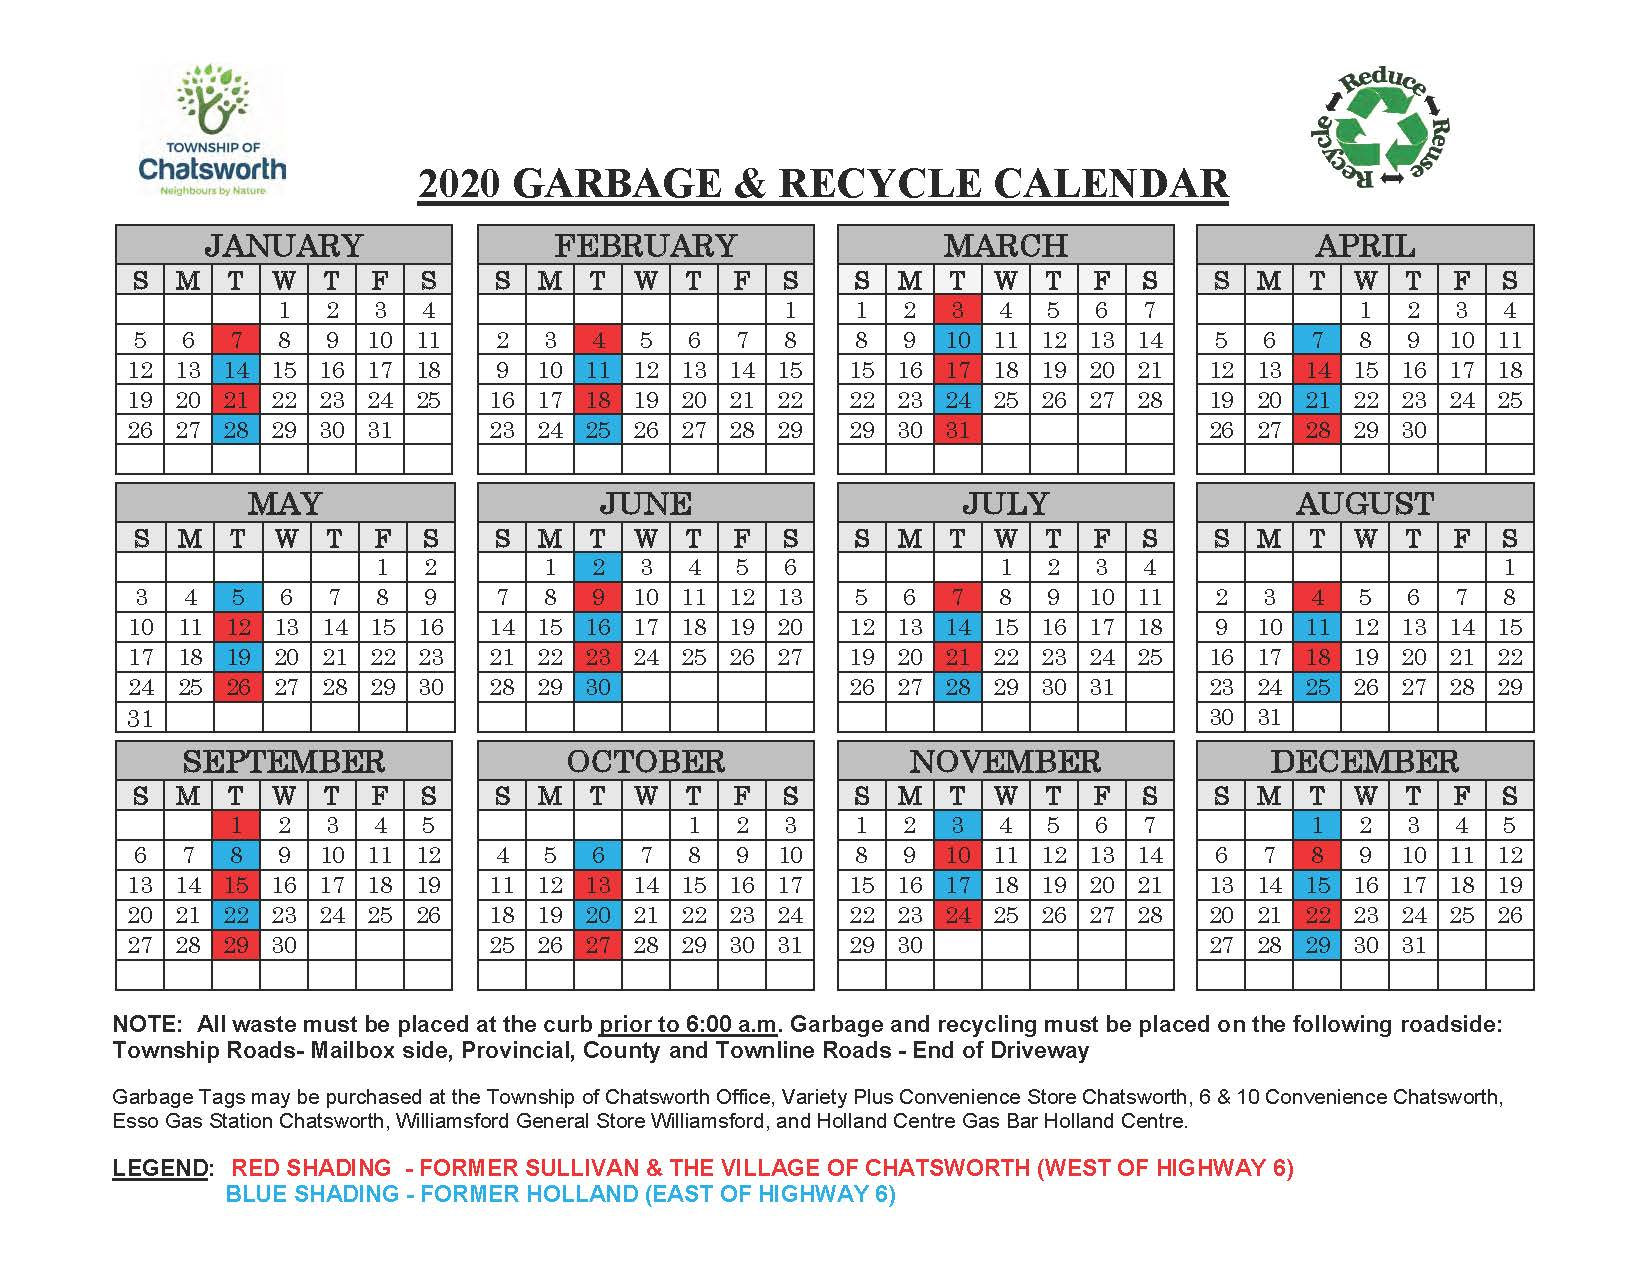 2020 Garbage & Recycling Schedule